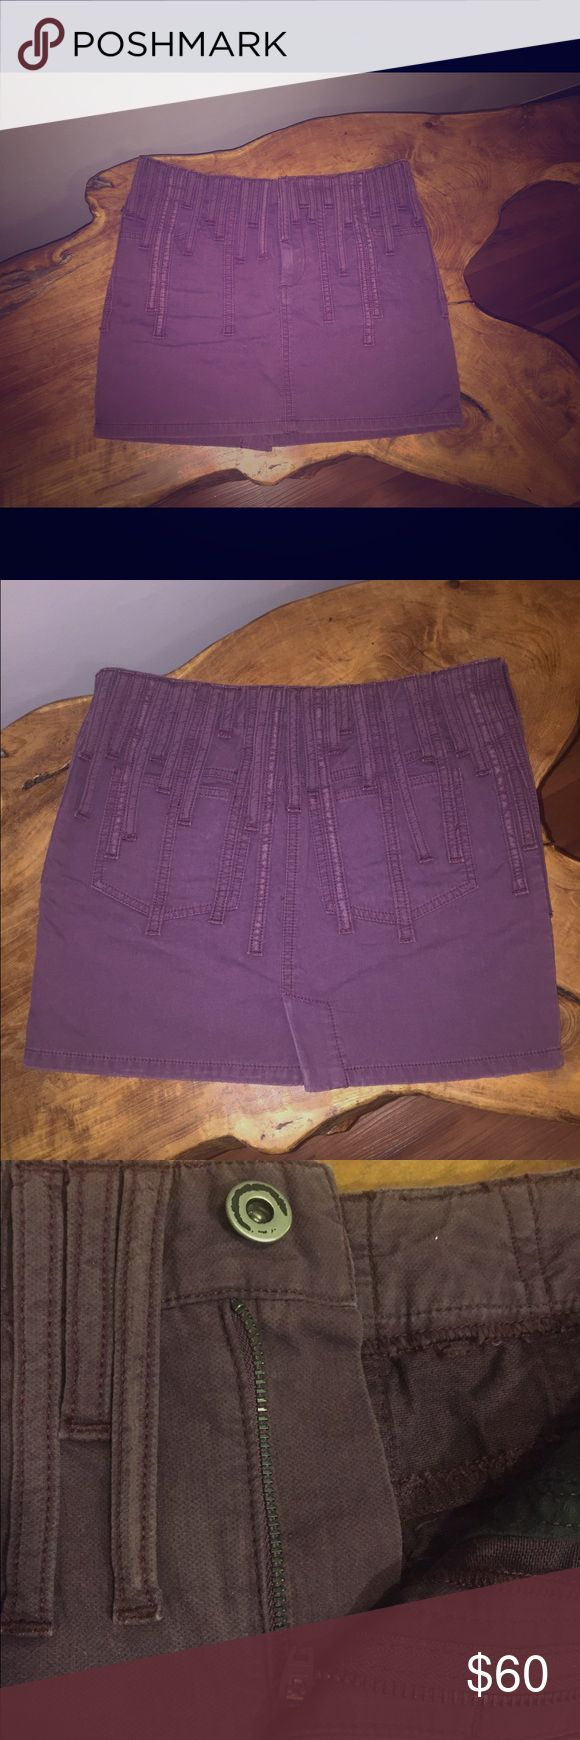 "Diesel Style Lab 80's rock denim statement skirt Festival chic, designer grunge, fitted denim mini from Diesel Style Lab in NYC that ran me hundreds of dollars, but to my disappointment never got the chance to wear because bending over was an issue.  Purplish plum color. I should have paired it with black leggings.  15"" length, 14.5"" across the top laid flat, small slit in back center.  Detailed random sized loops all around skirt, giving it a total over-all edgy look. 100% cotton. Made in…"